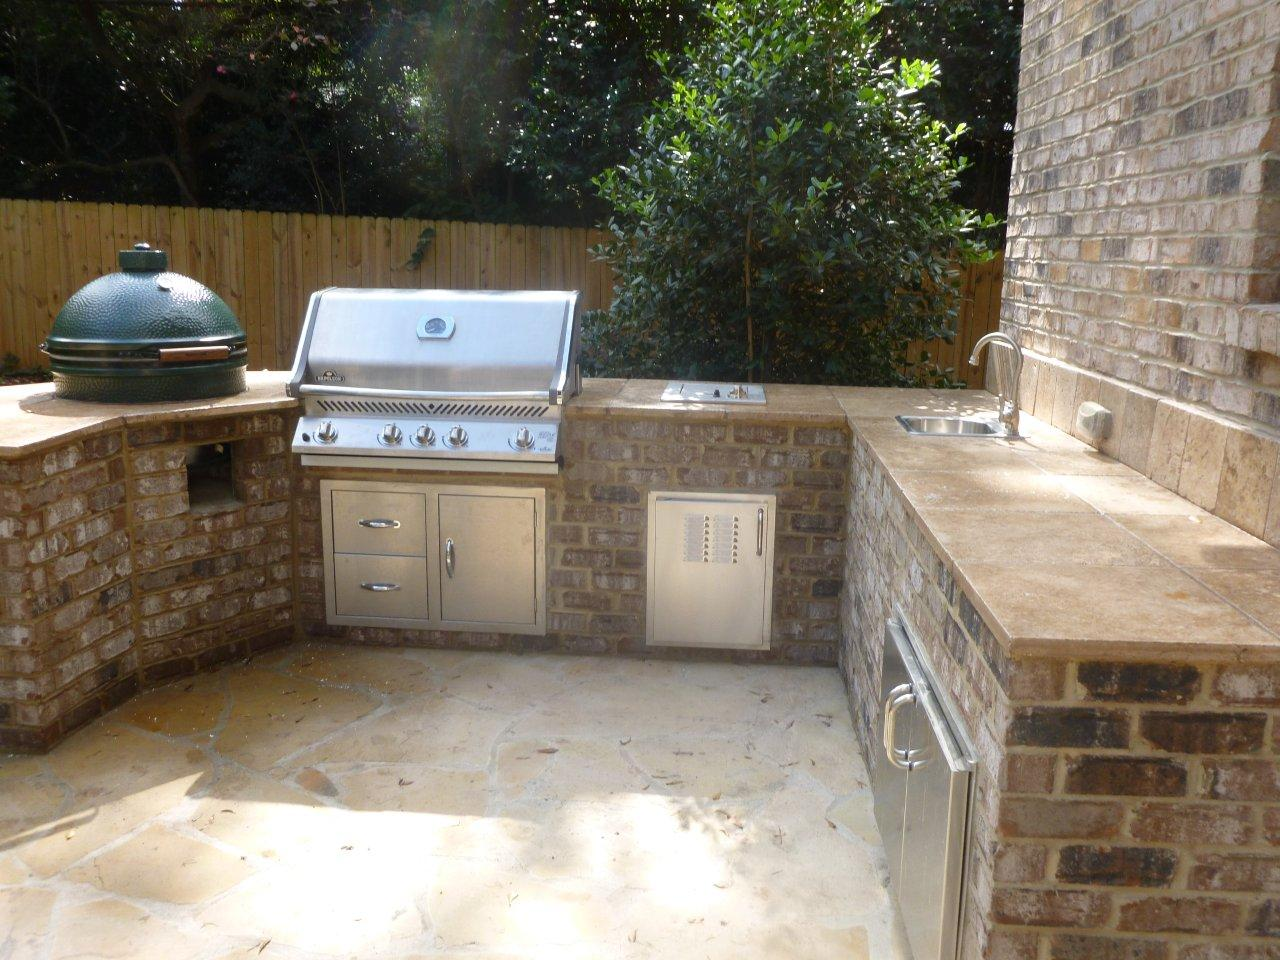 Outdoor Patio Kitchen Outdoor Tile Countertops Grill Travertine Counter Outdoor